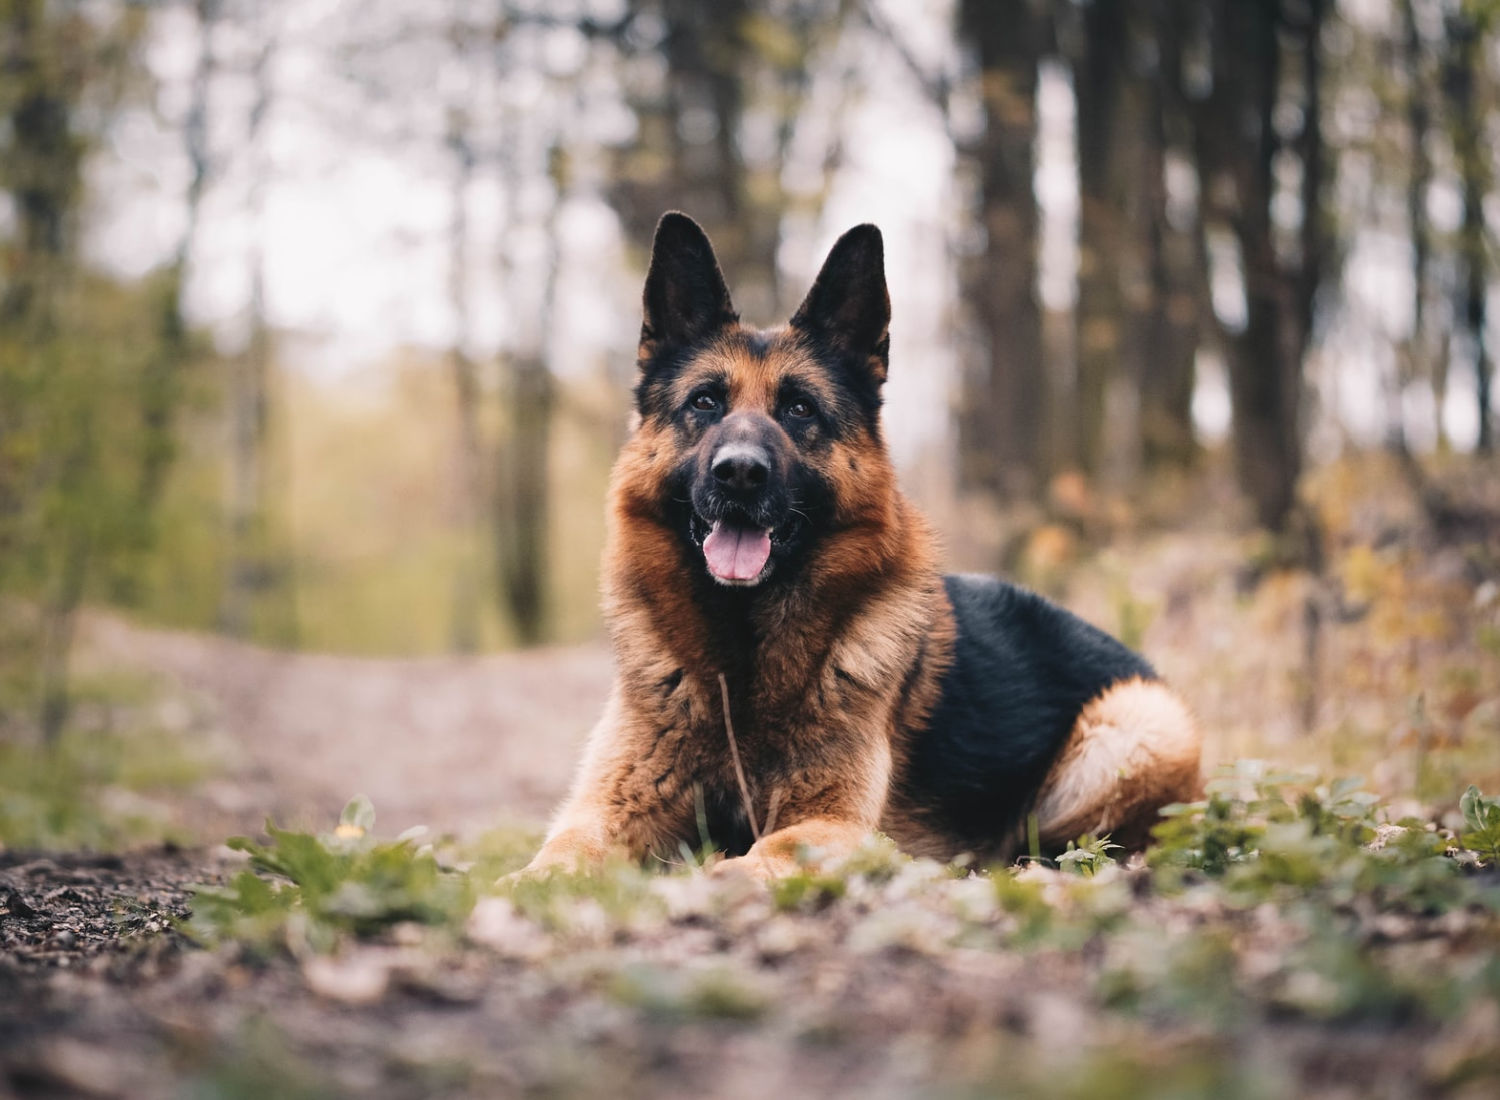 Long-Haired German Shepherd: The Fluffy GSD Breed